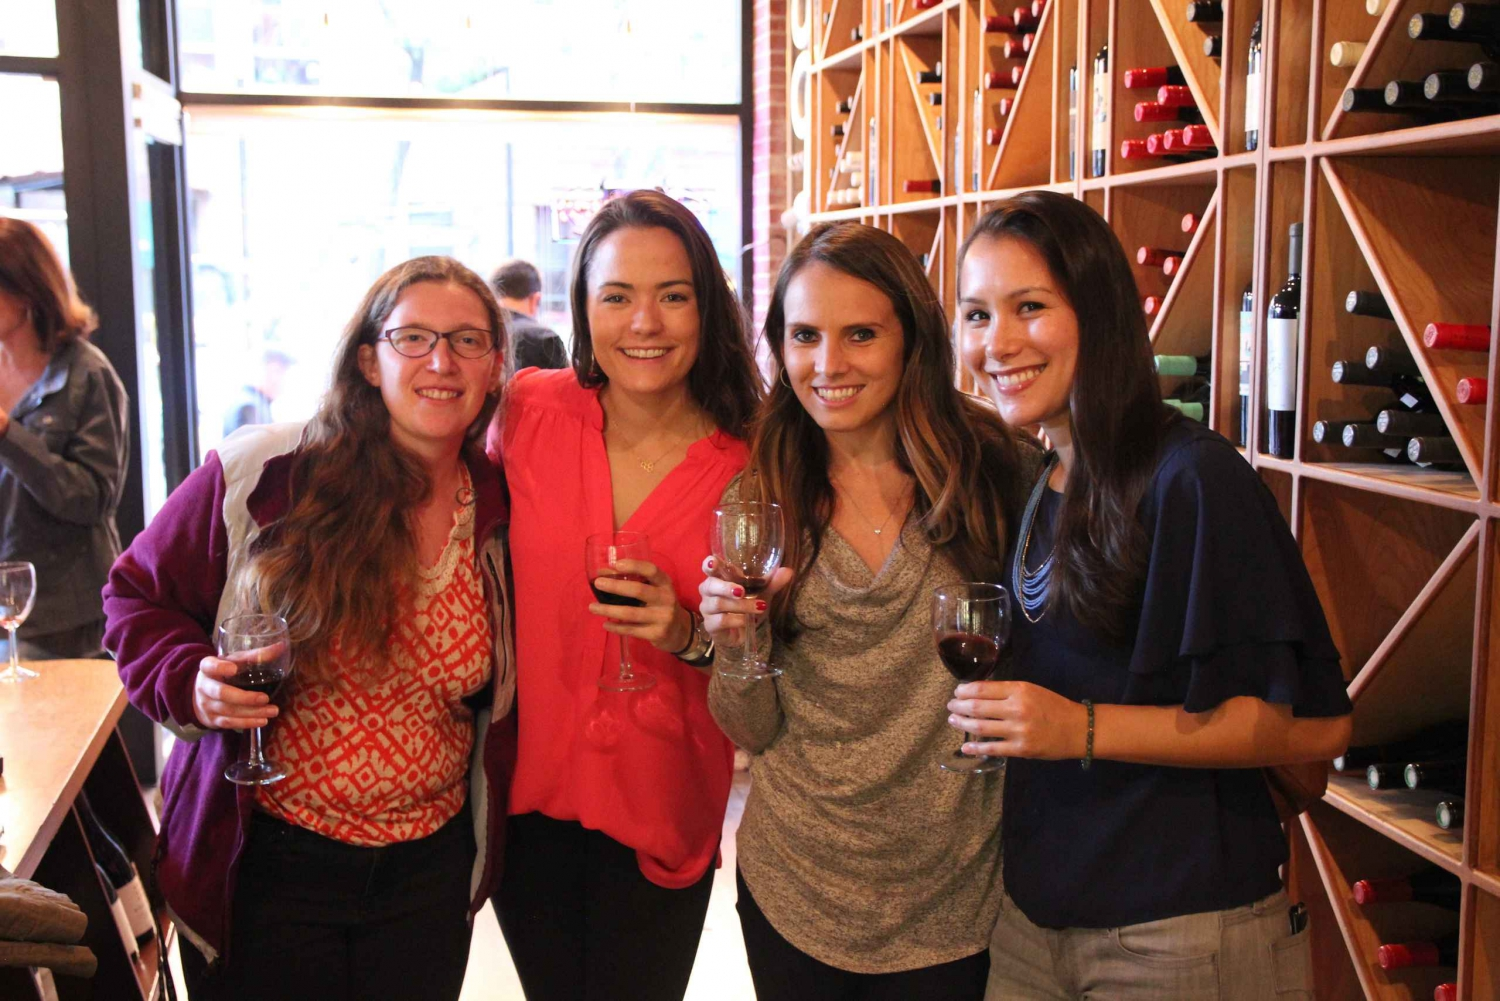 New SoHo Wine Tasting and Walking Tour